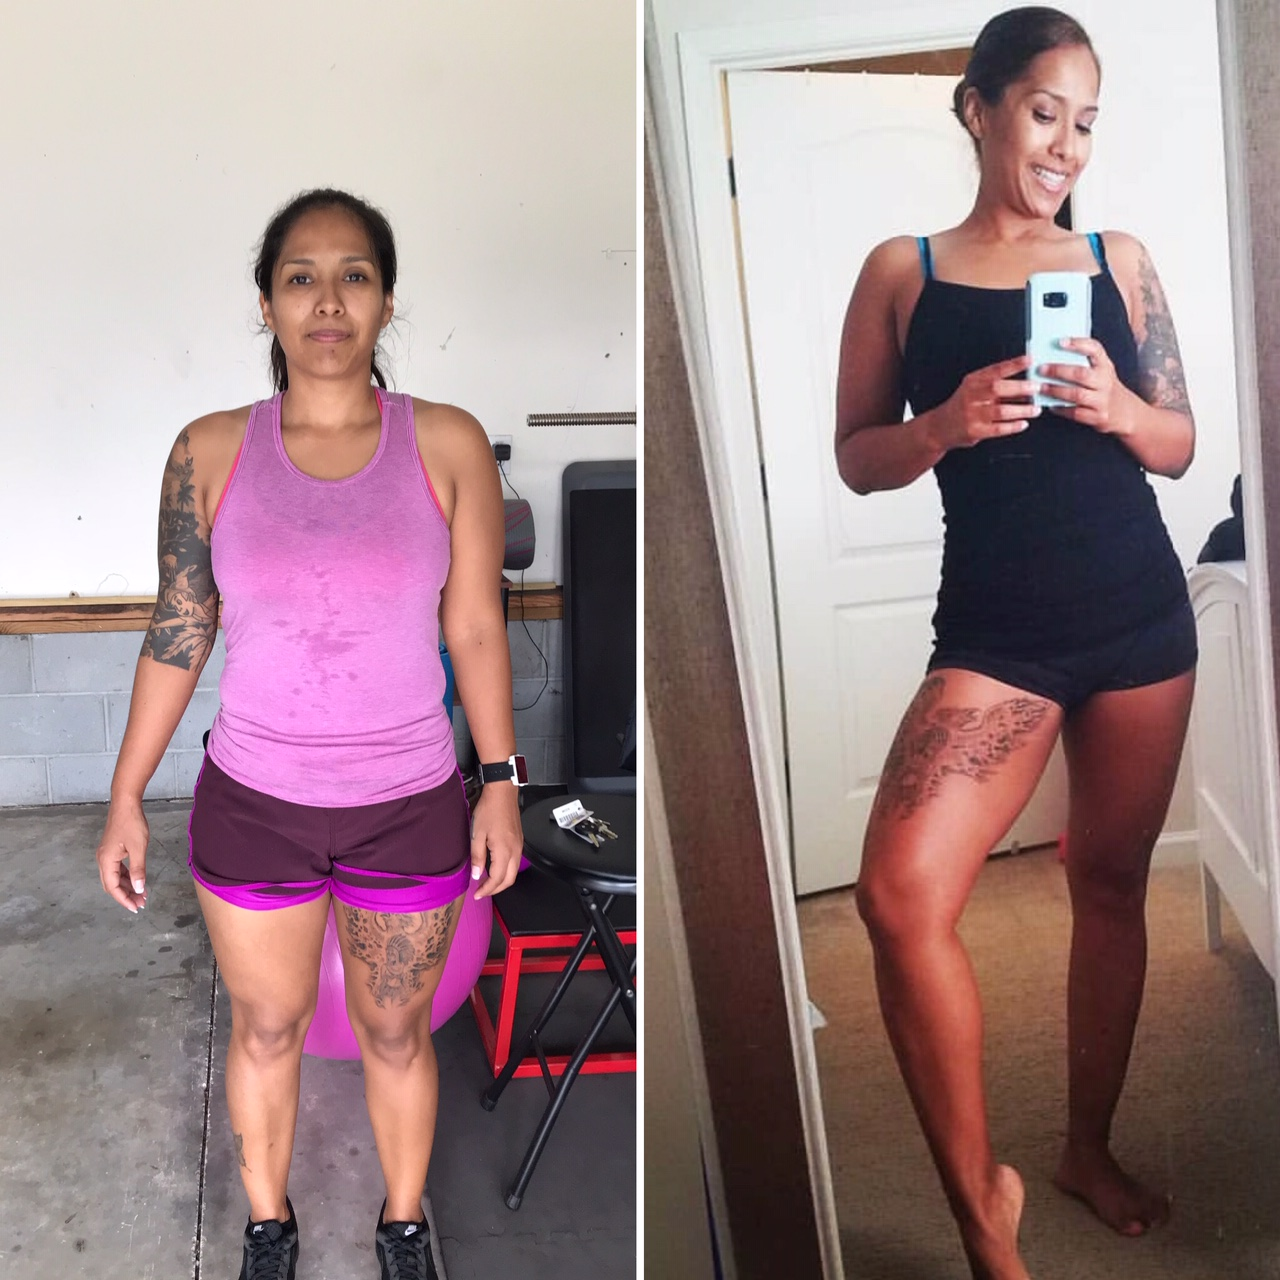 "Mommy on fire - ""Mother of two on fire for my health. This program gave me immediate results. I put that bikini on that I always wanted to wear but did not have the confidence. I lost 22 pounds!""-Elise"